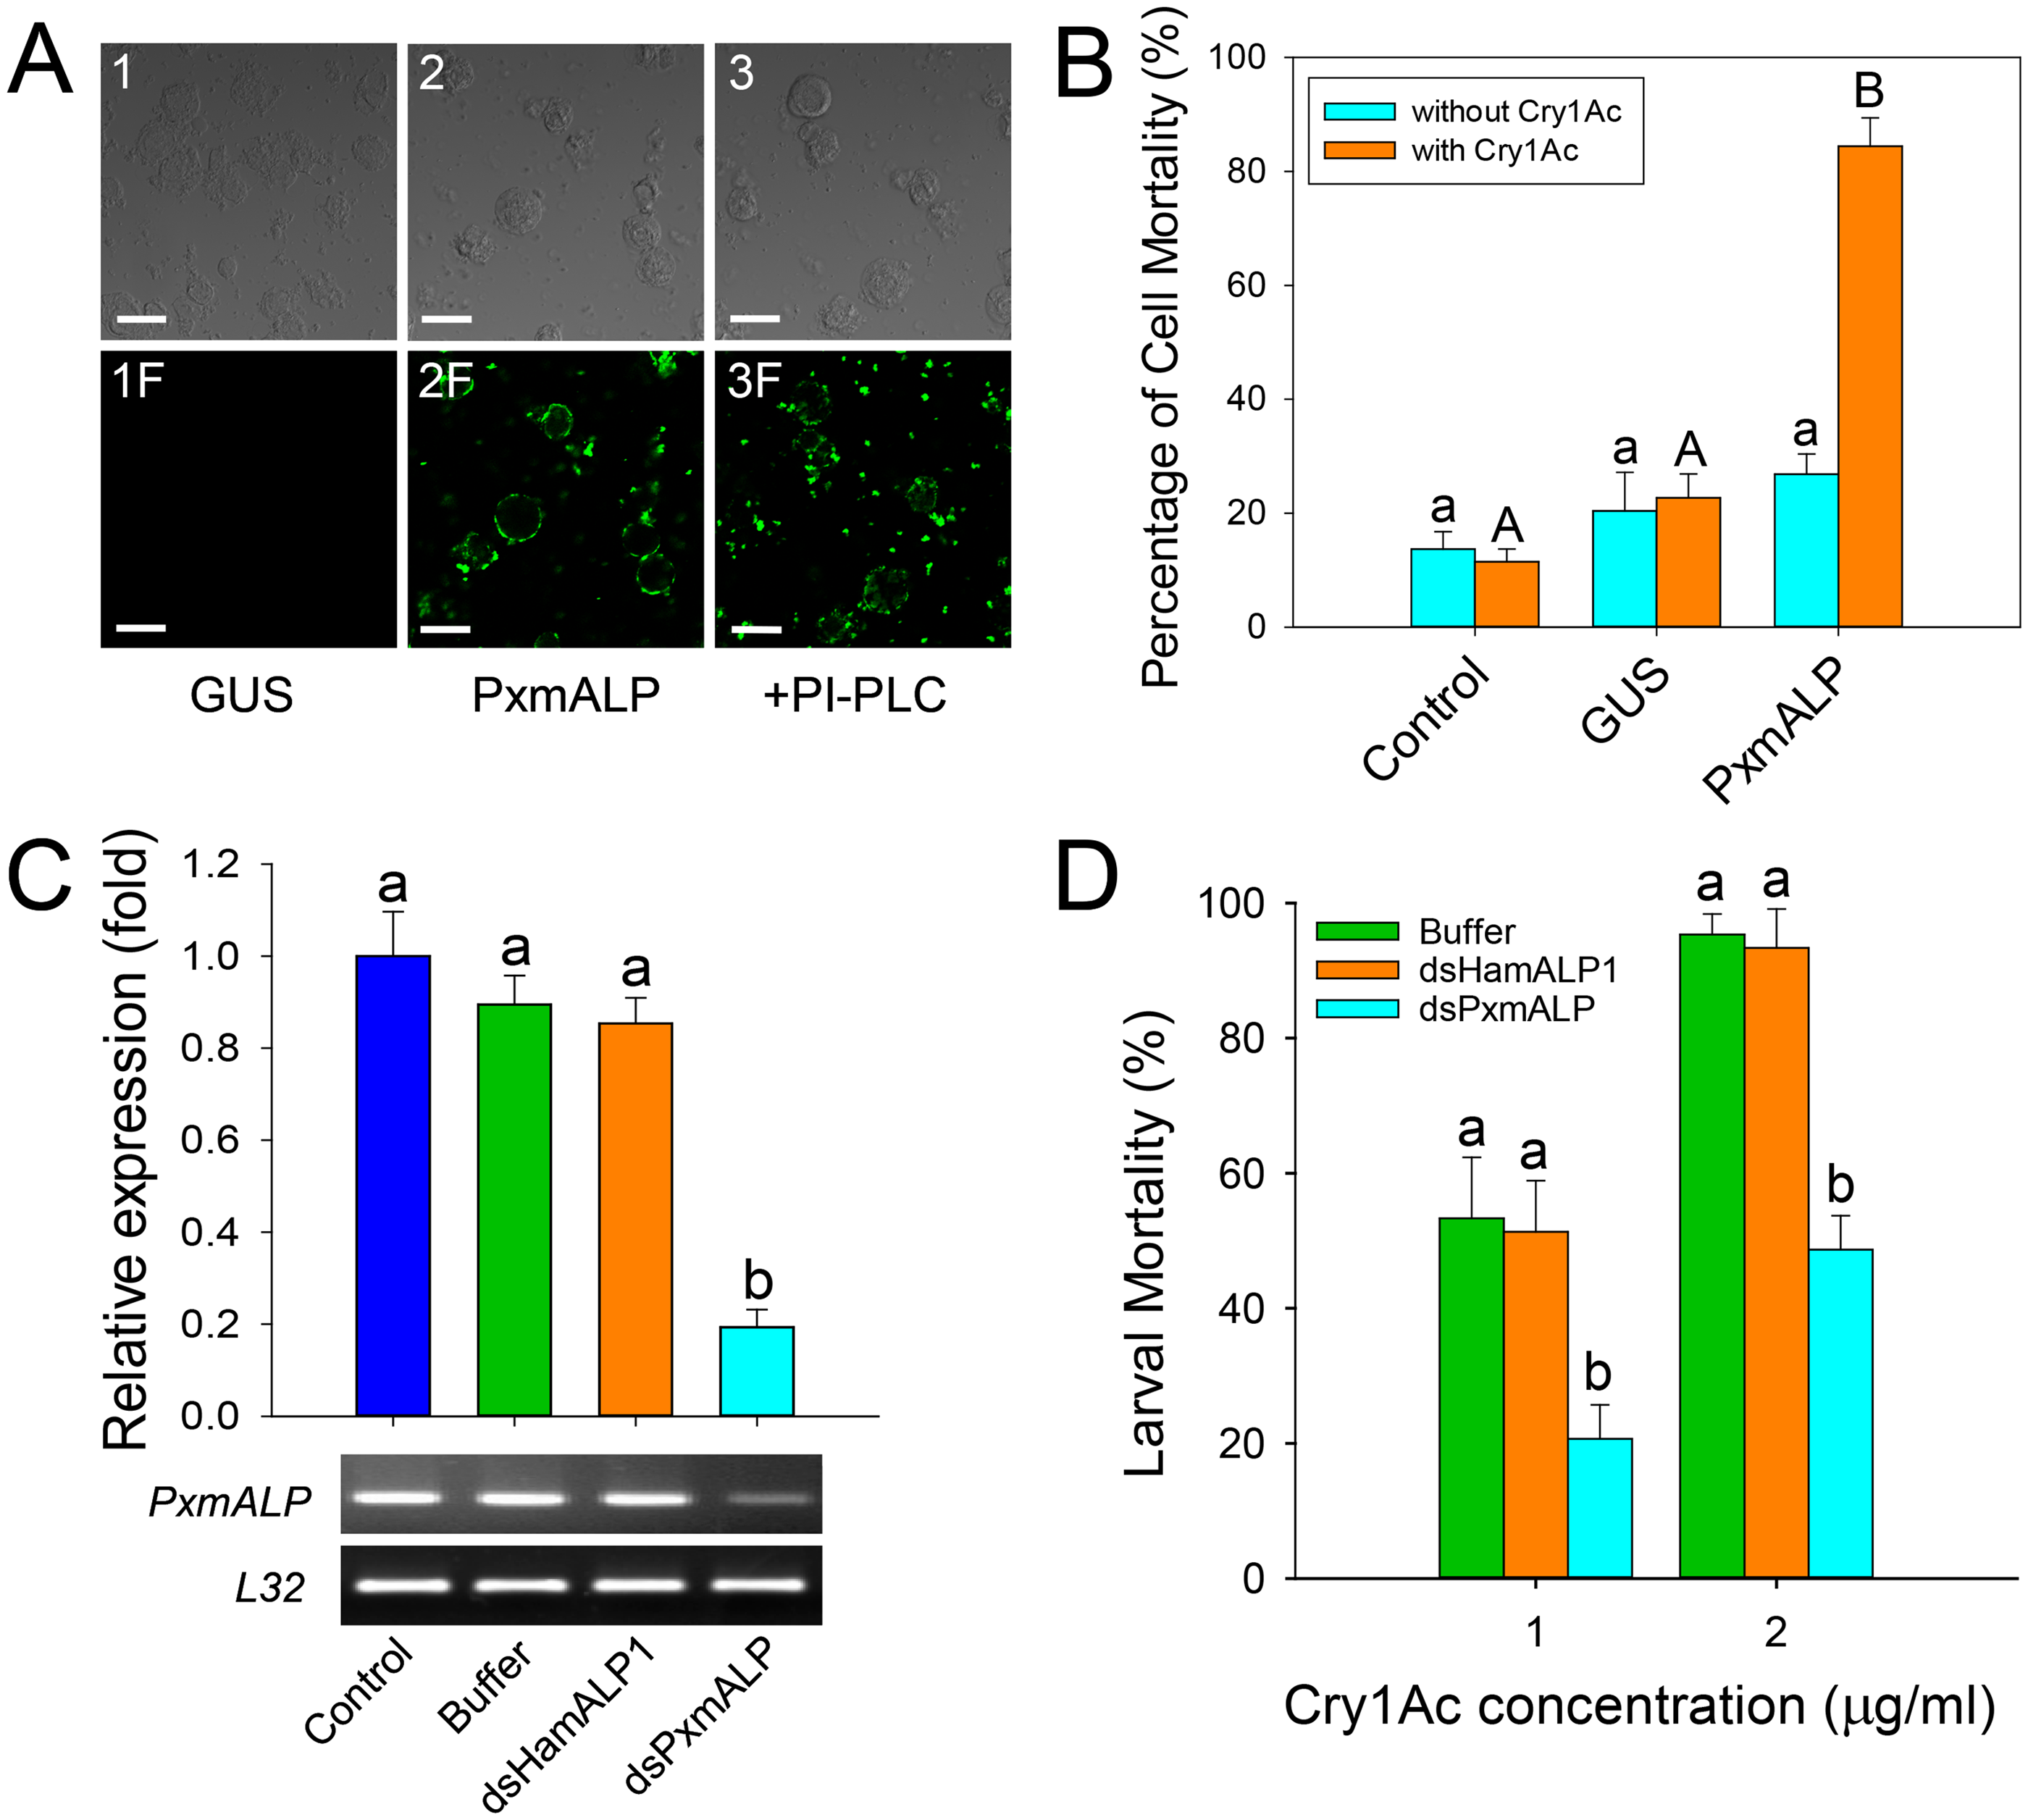 Heterologous expression and silencing of <i>PxmALP</i> have obvious effects on susceptibility to Cry1Ac.